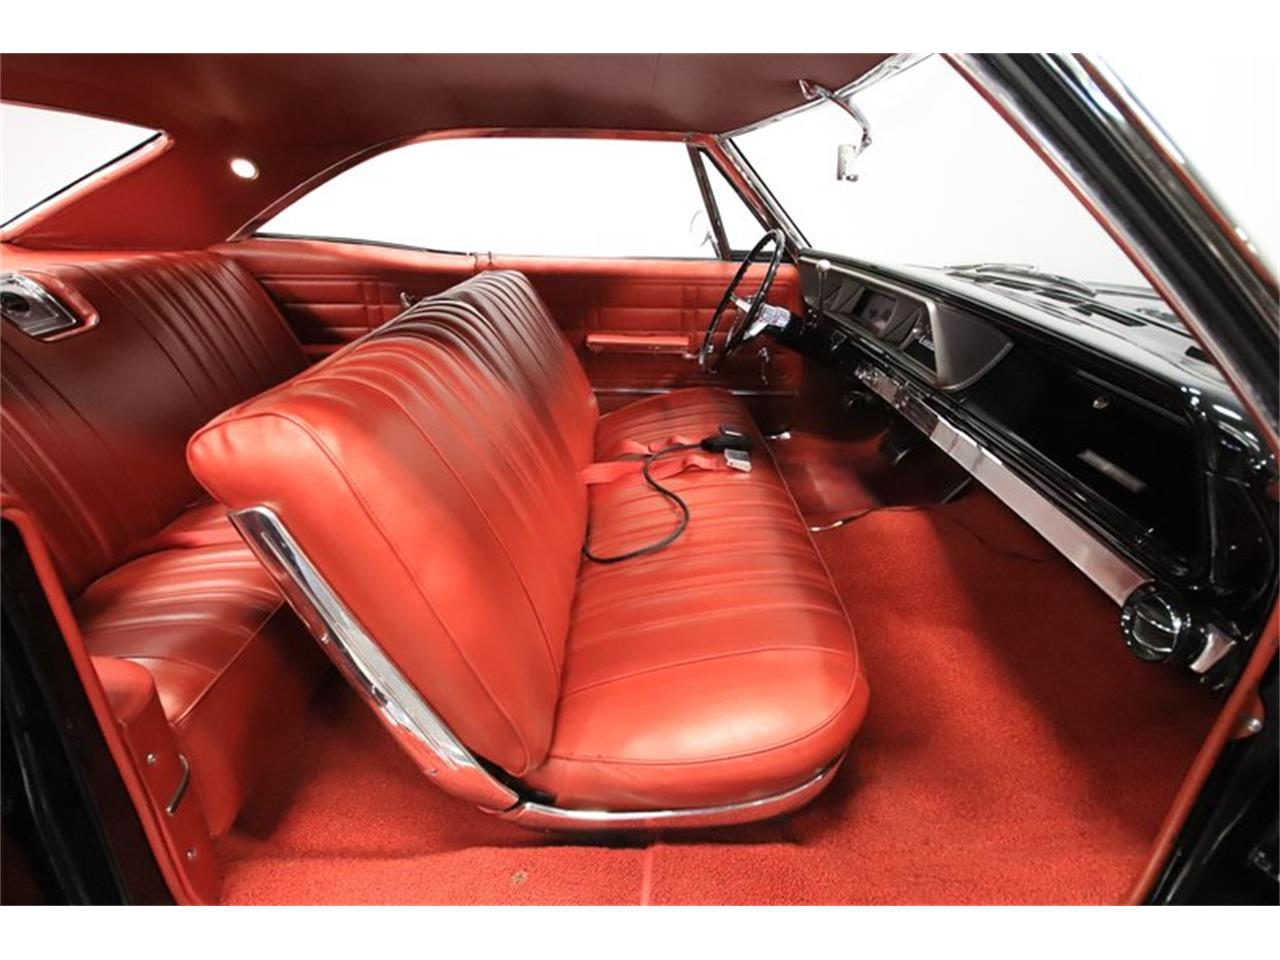 Large Picture of 1966 Chevrolet Impala located in Mesa Arizona - $52,995.00 Offered by Streetside Classics - Phoenix - Q2EF